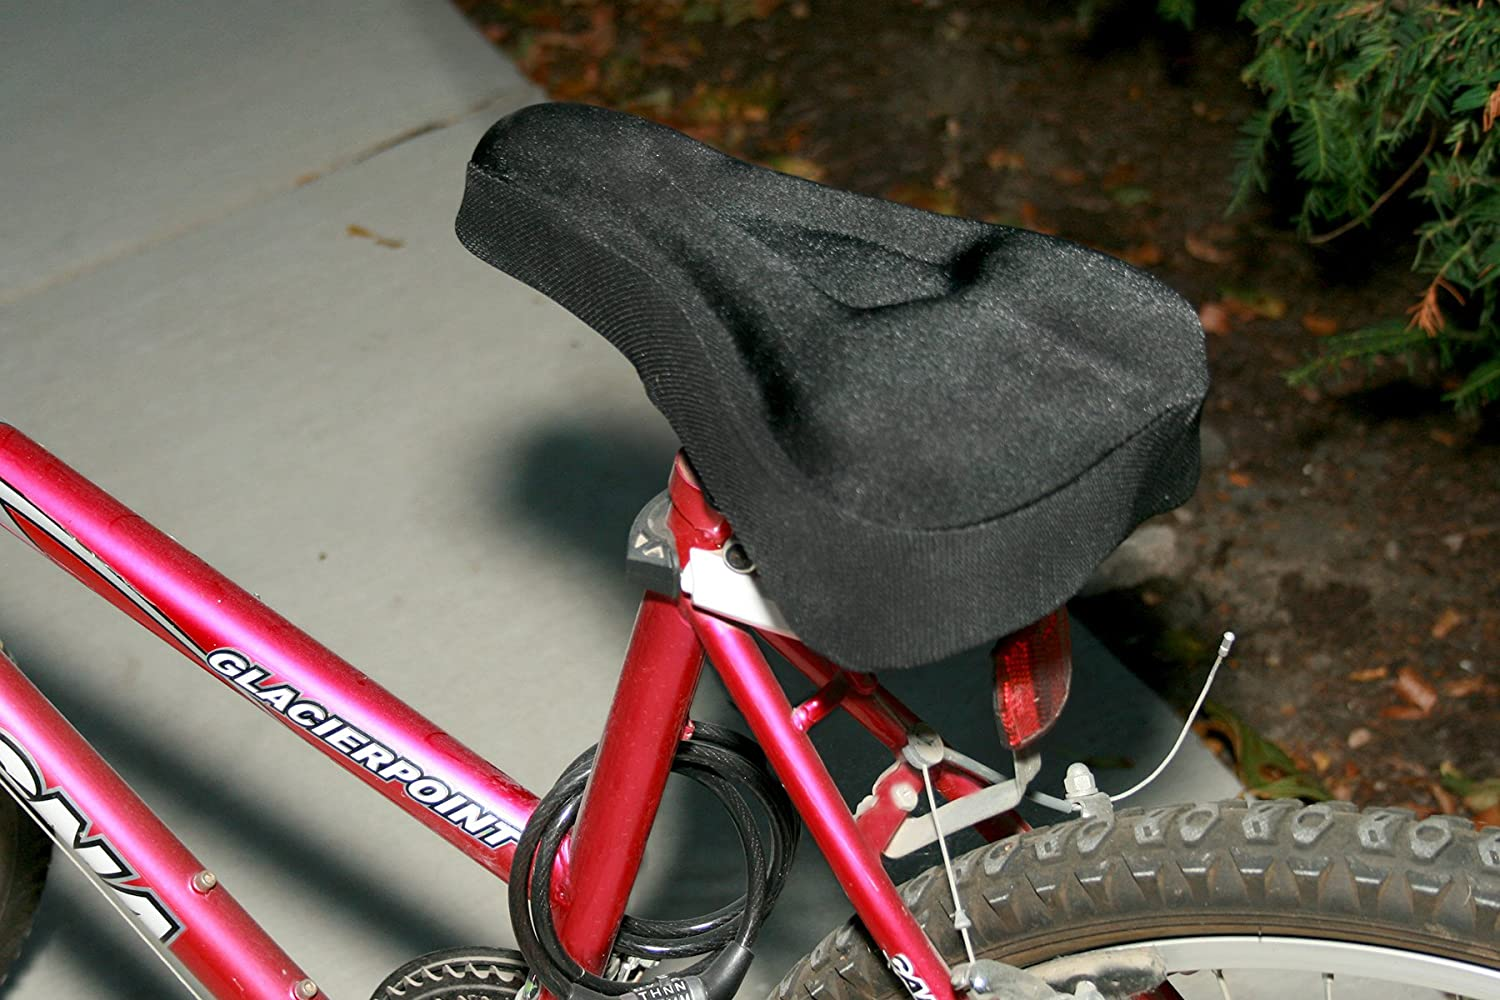 Covers The Home Bicycle Accessories